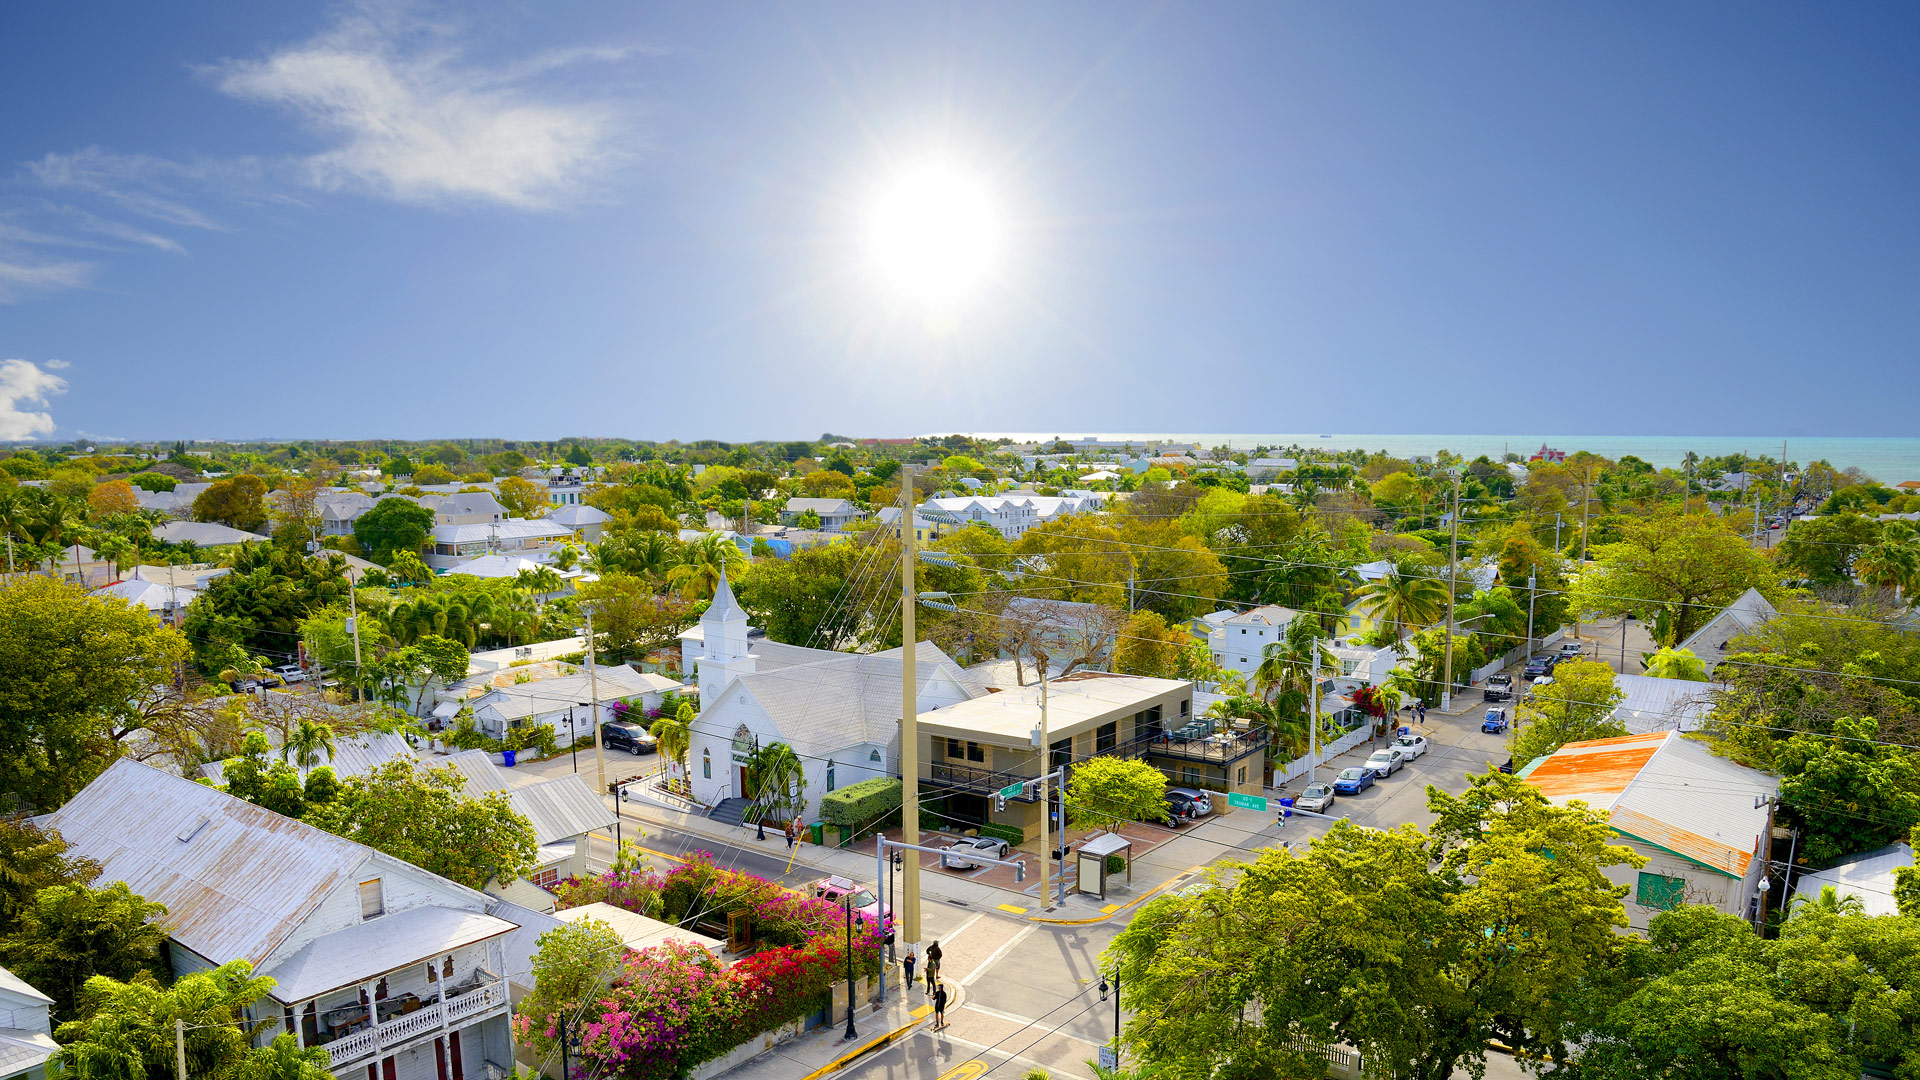 Key West Christmas Parade 2019.Key West Travel Key West Hotels Vacation Planning With